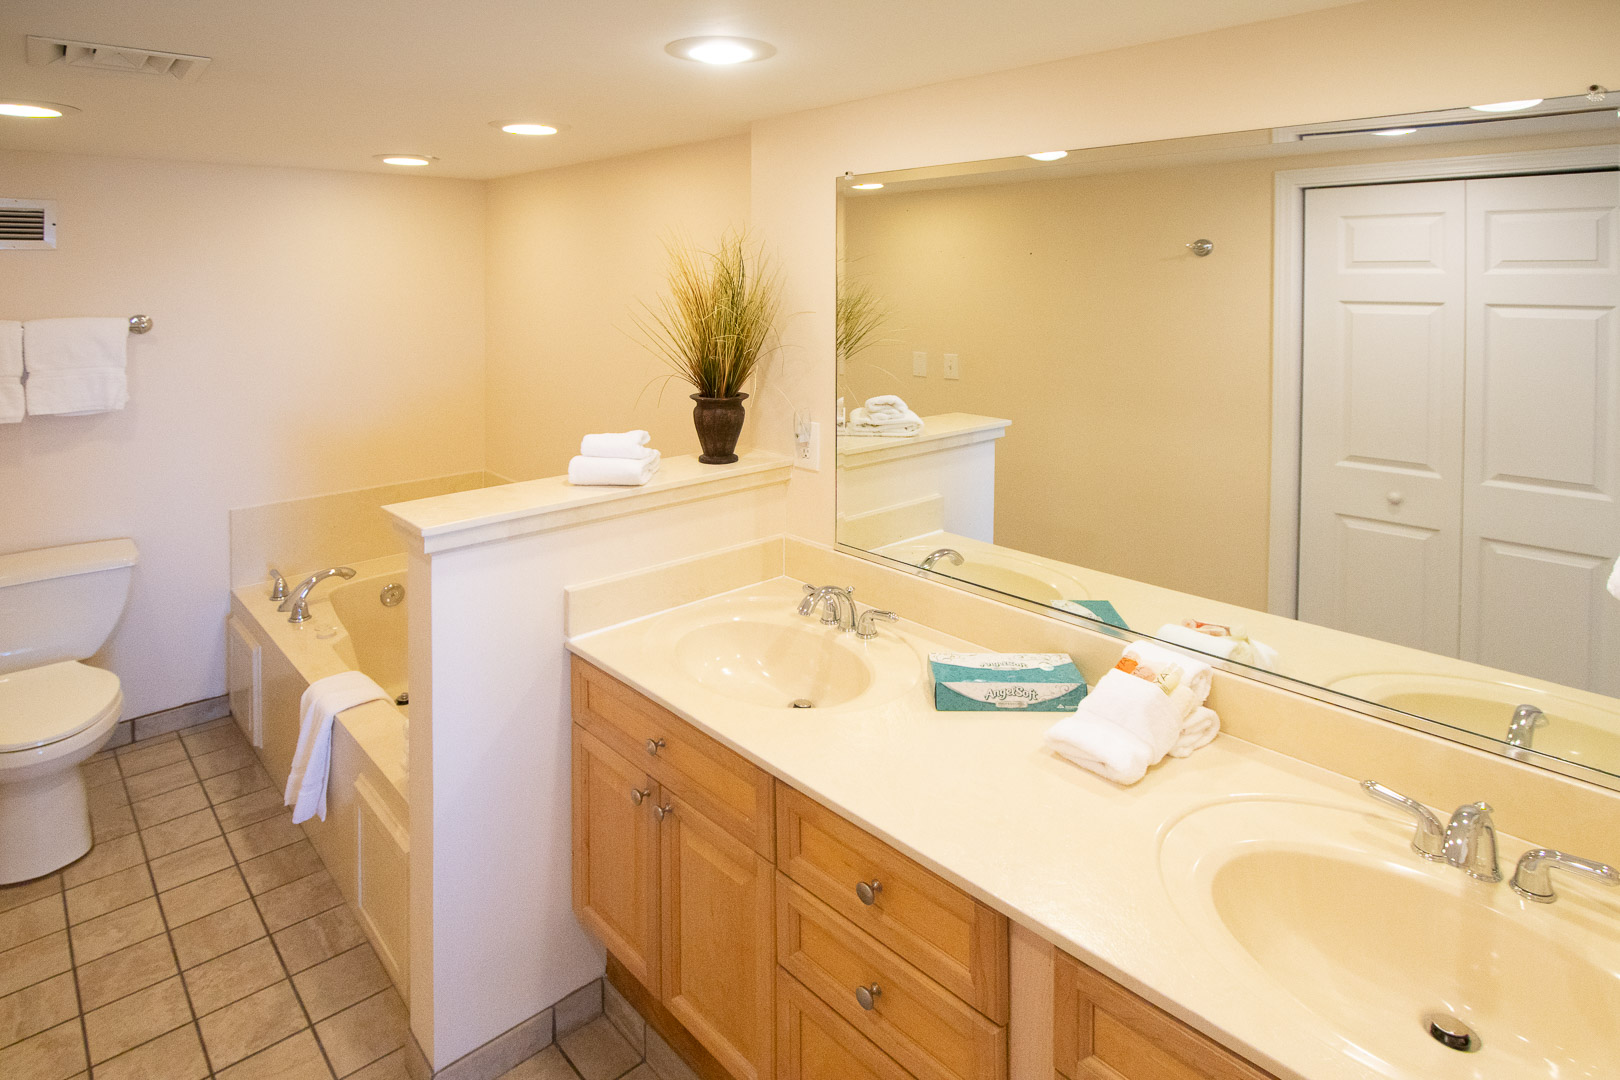 An expansive bathroom with a Hot tub at VRI's Bay Club of Sandestin in Florida.